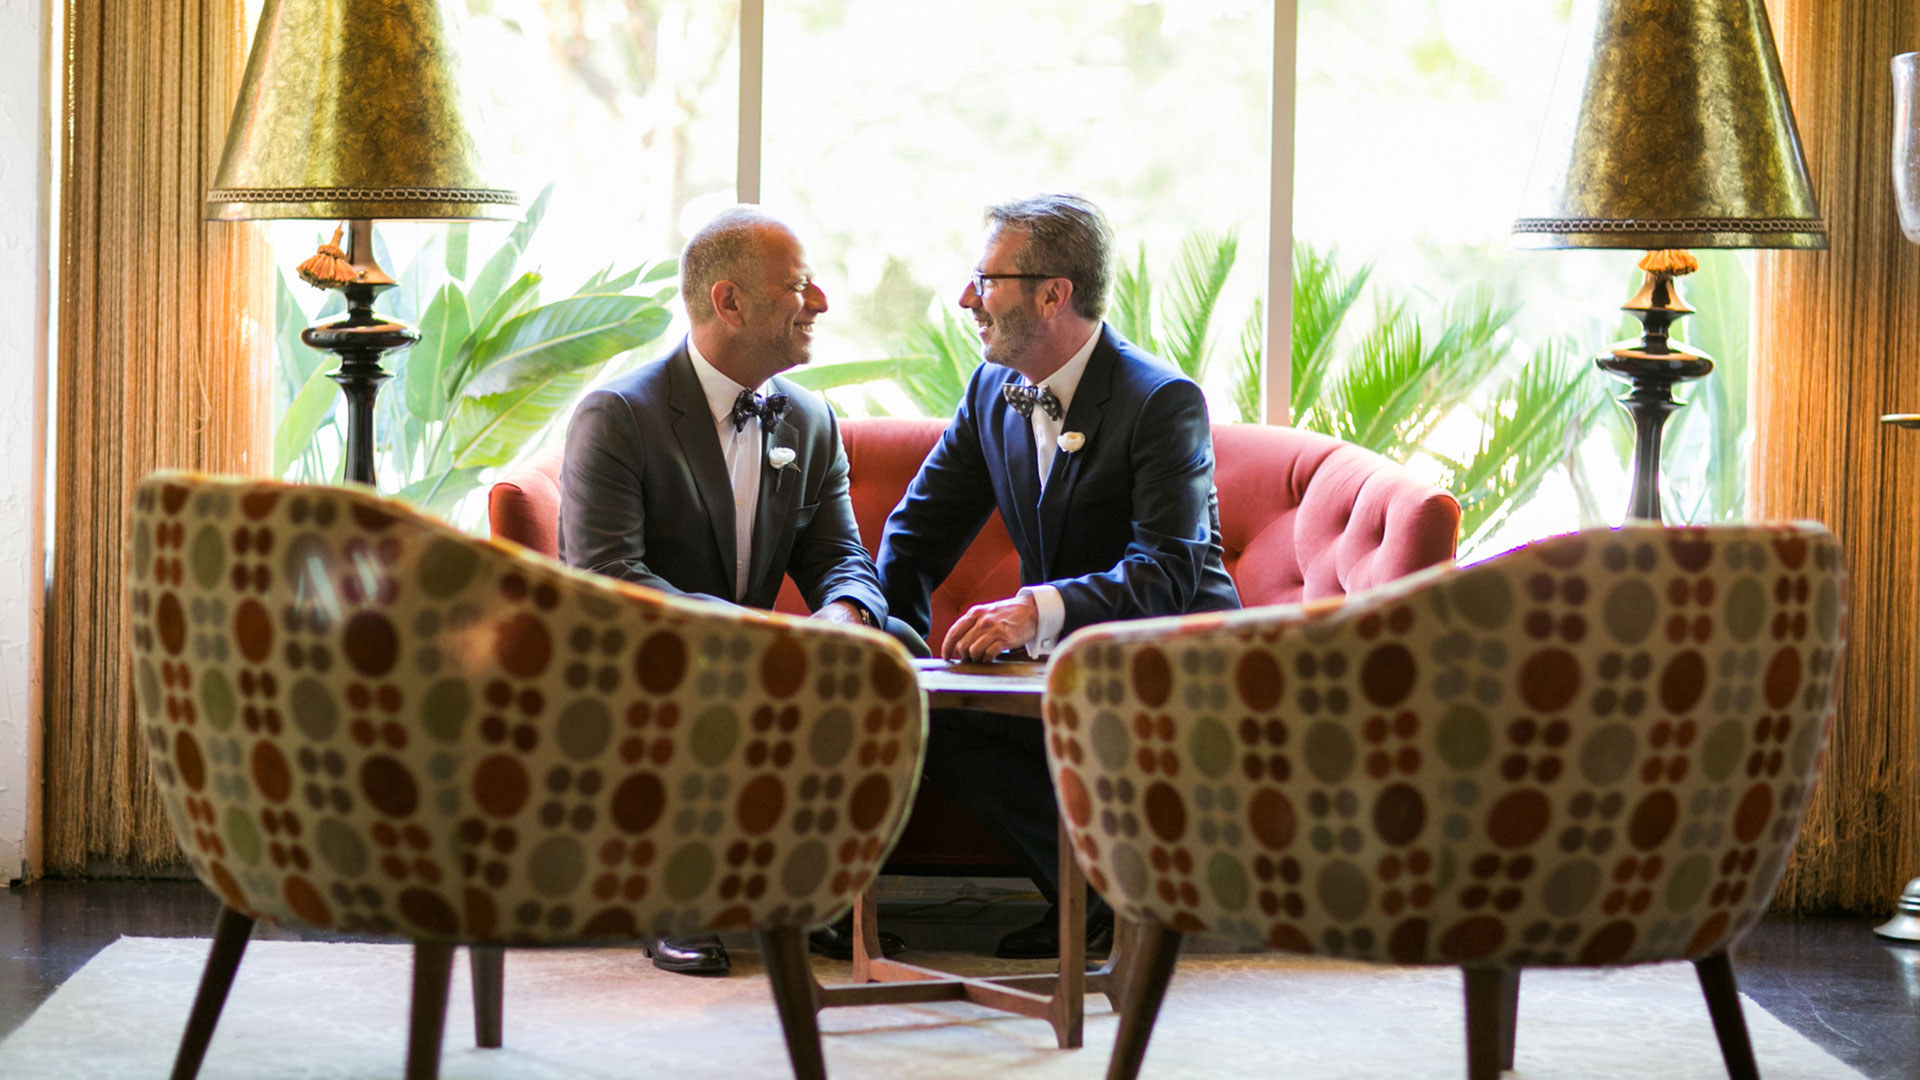 plan the ultimate lgbt wedding in greater palm springs